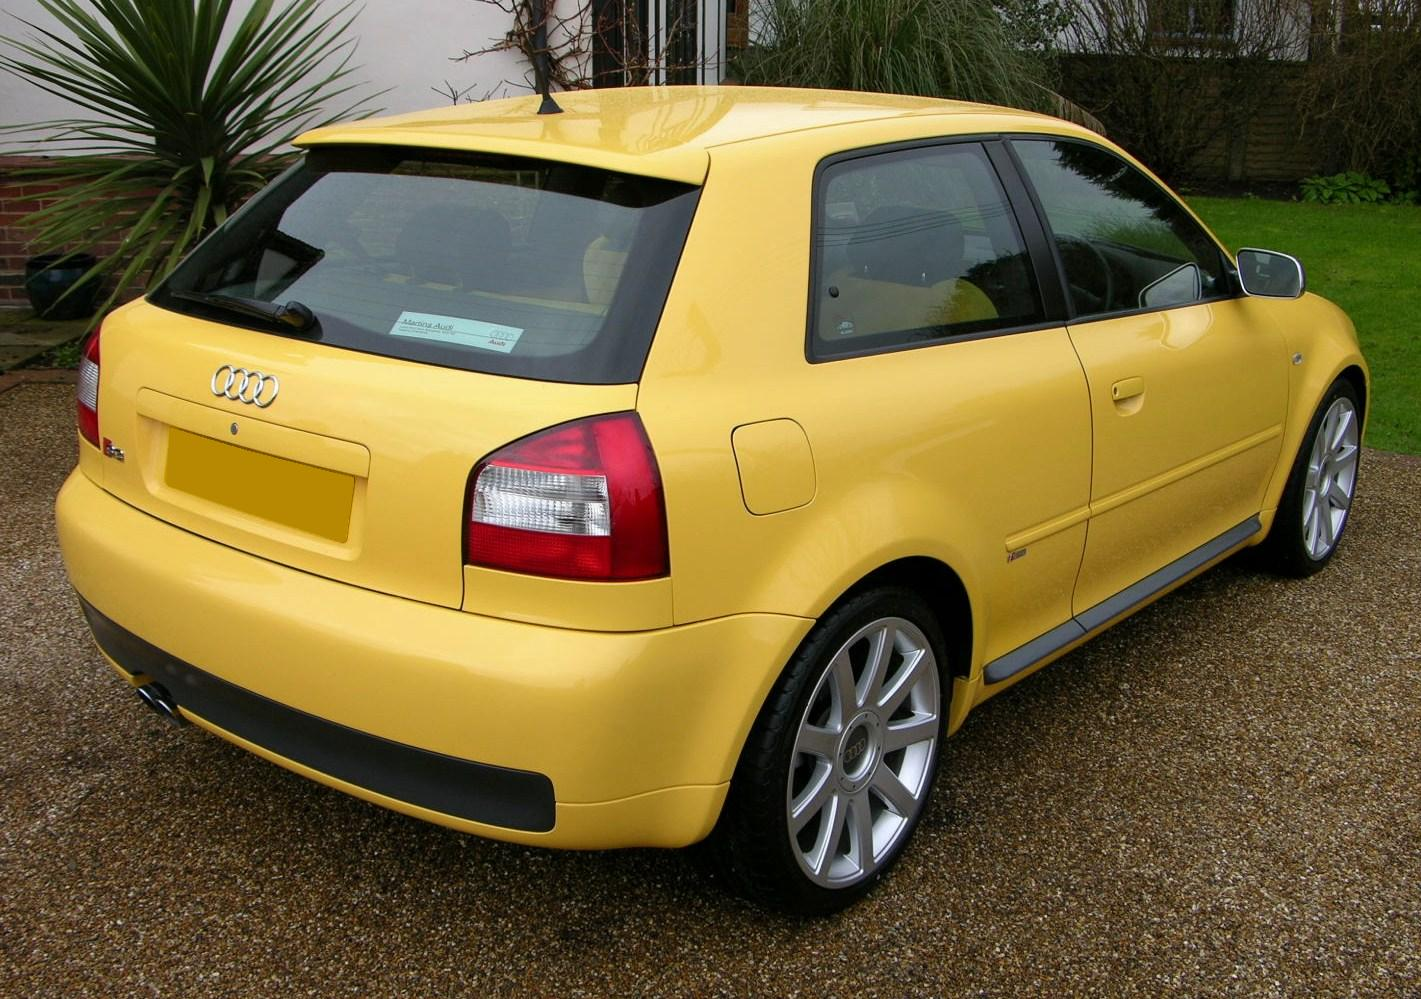 File:Audi S3 2002 Imola Yellow Heck.jpg - Wikimedia Commons